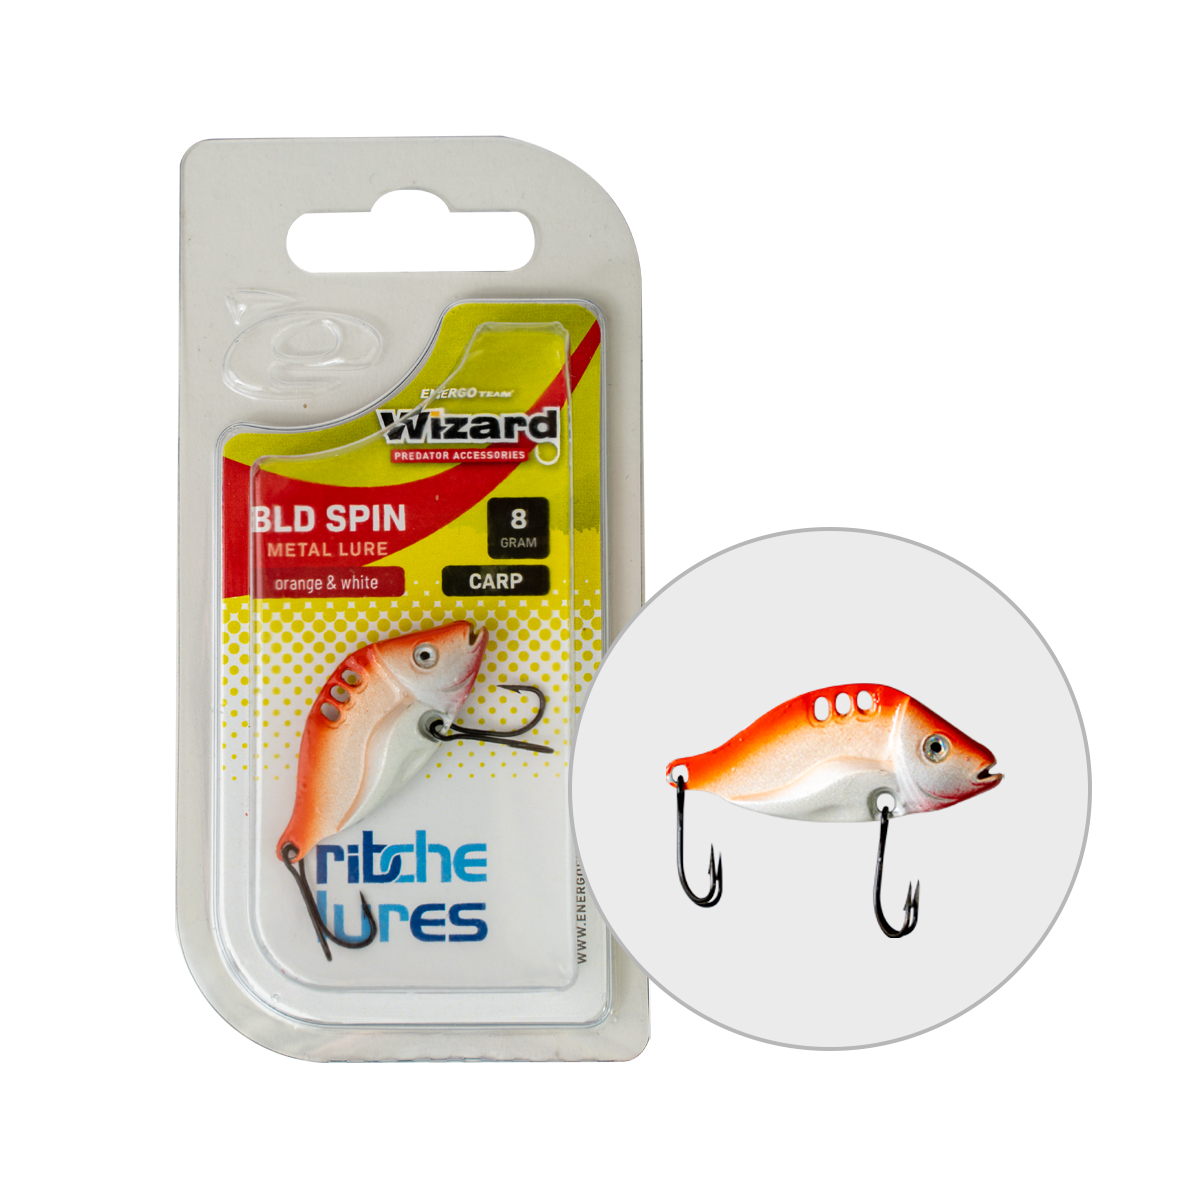 VILLANTÓ WIZARD BLD SPIN CARP 8GR ORANGE & WHITE